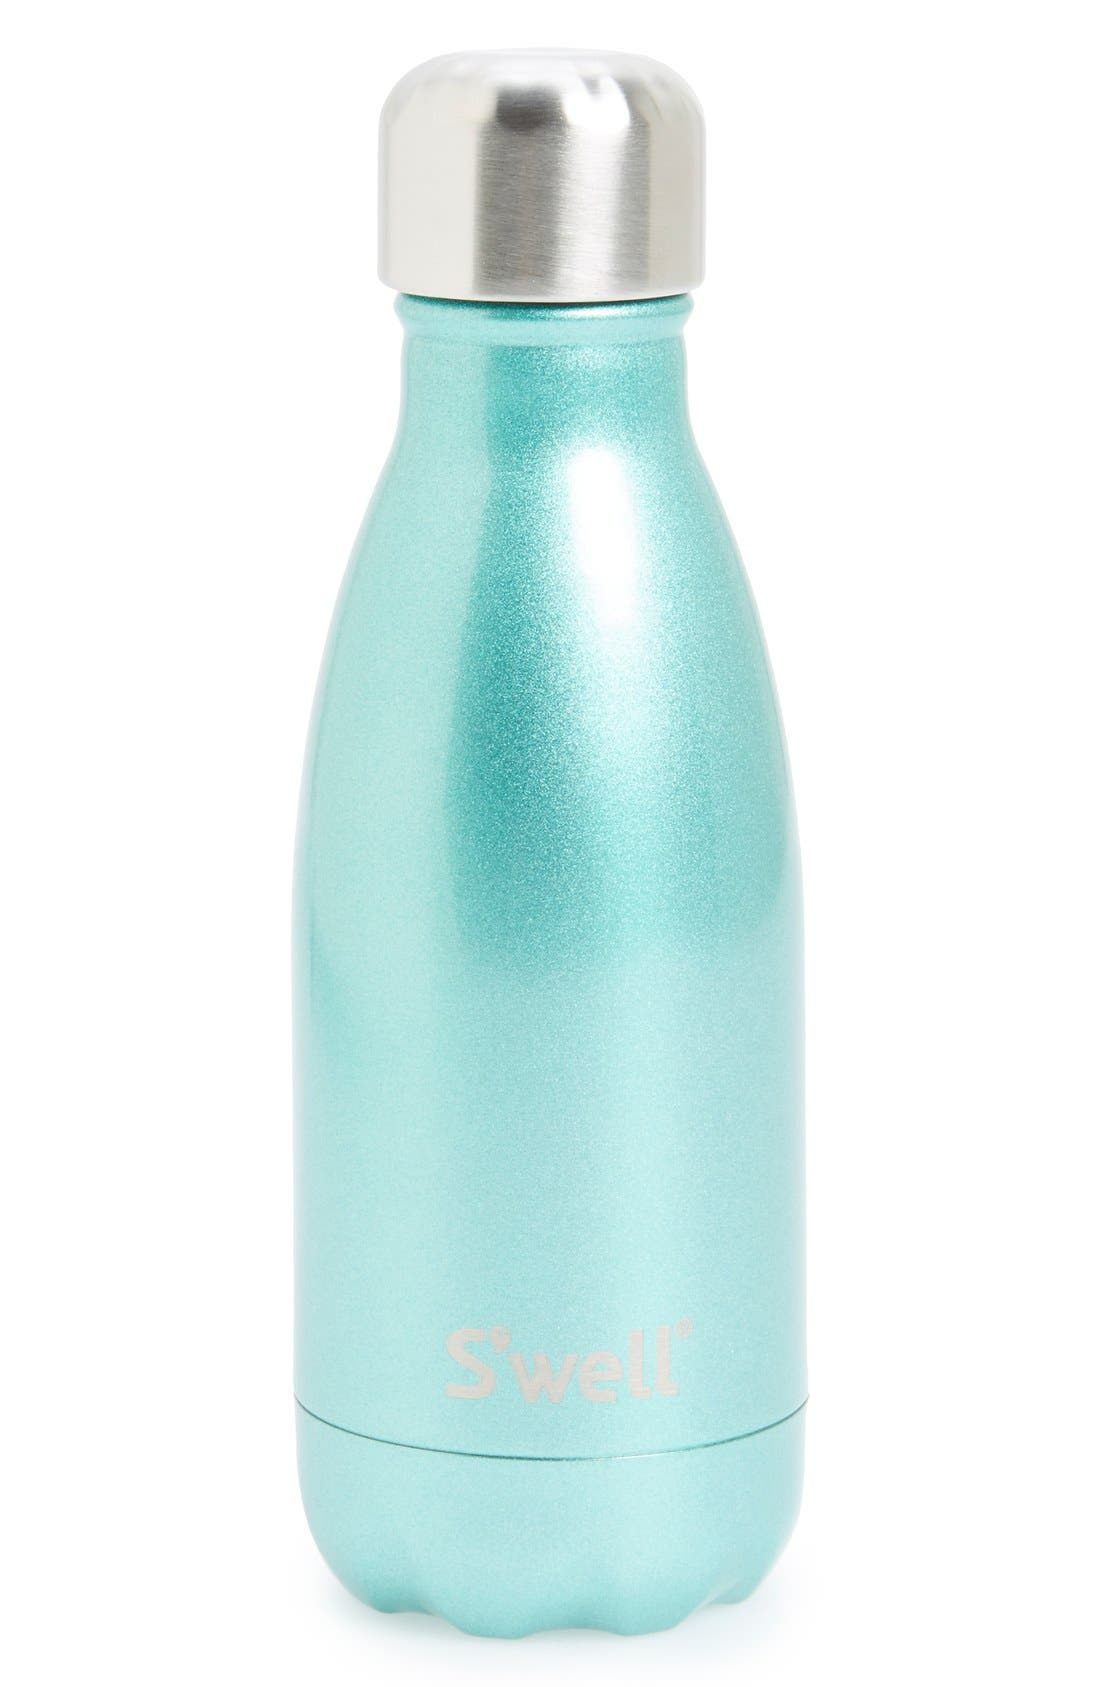 Main Image - S'well 'Sweet Mint' Insulated Stainless Steel Water Bottle